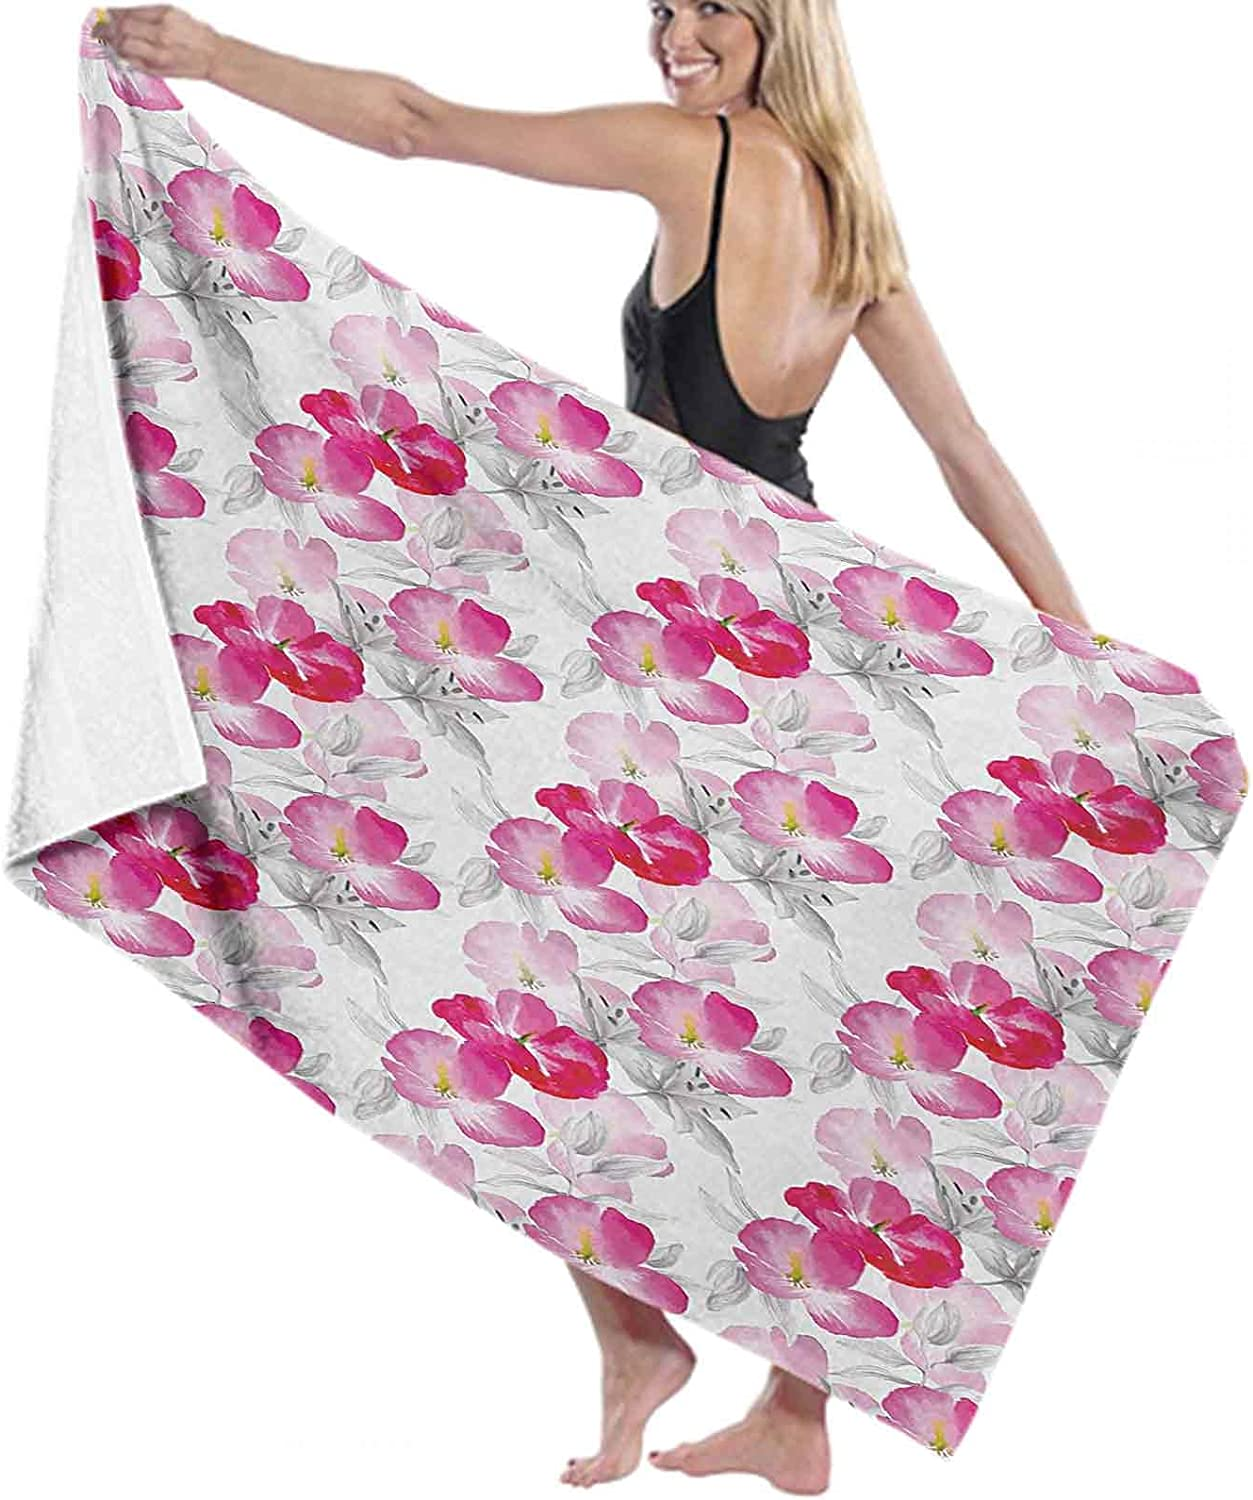 Floral Towels for Bathroom Lightweight Watercolor P Special price a limited time Quick-Dring 1 year warranty